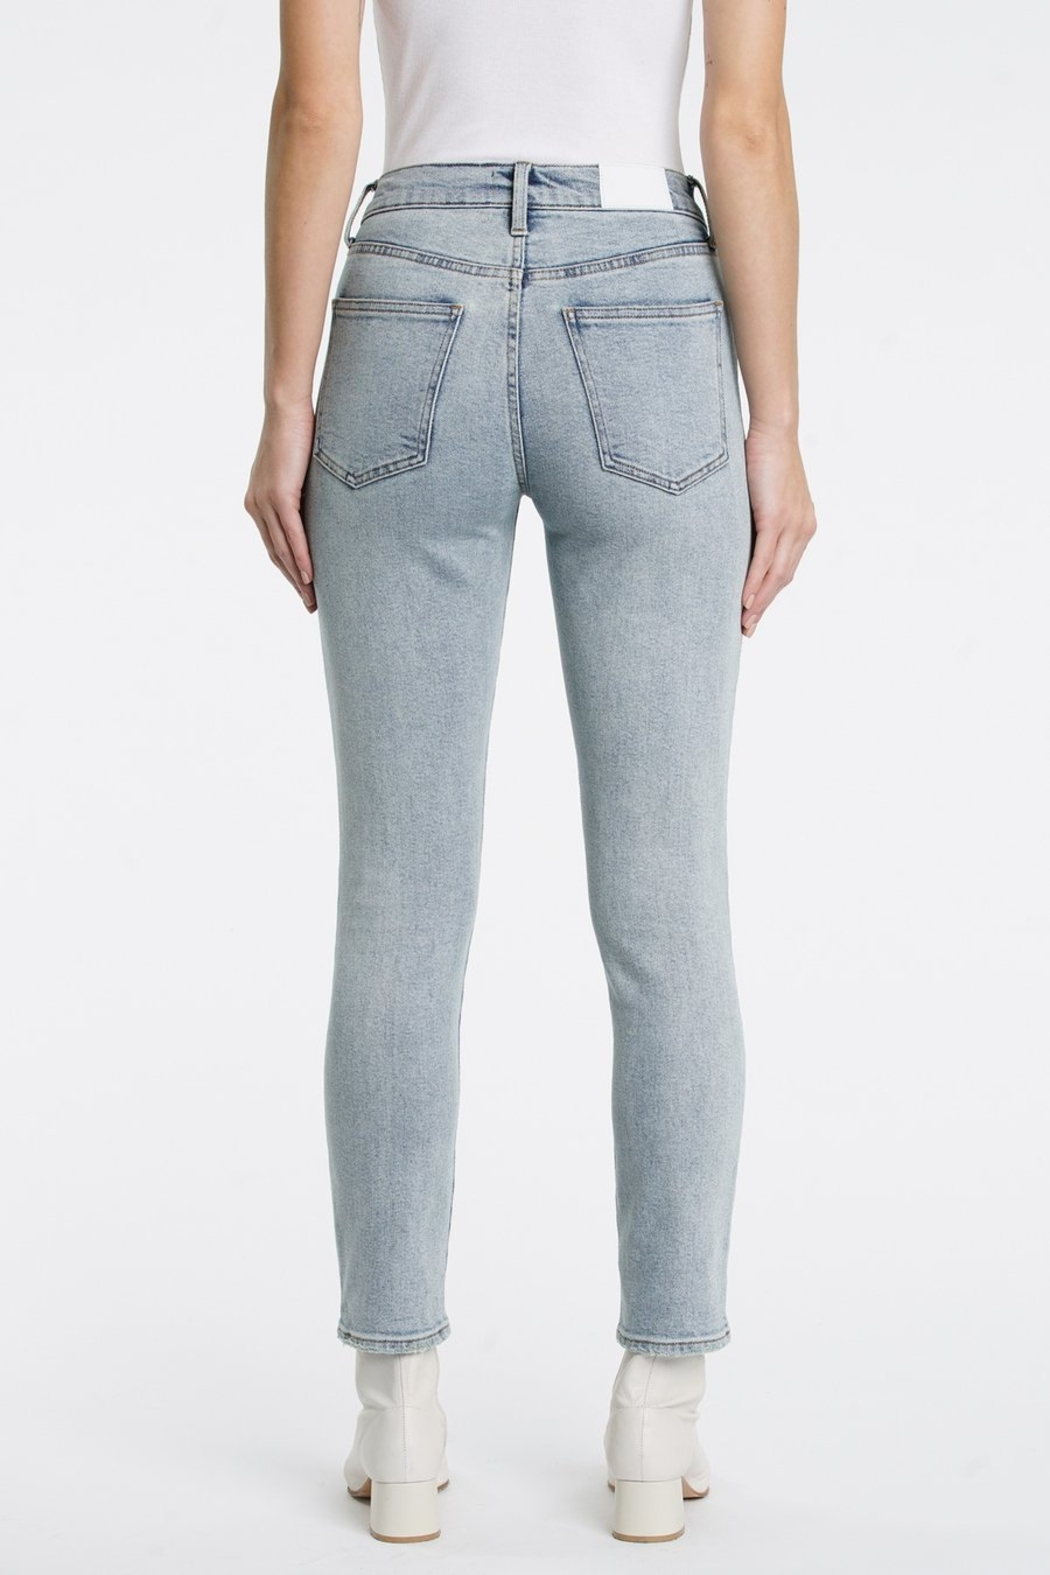 Pistola Cara Straight Leg Jeans in Jolie - Back Cropped Image